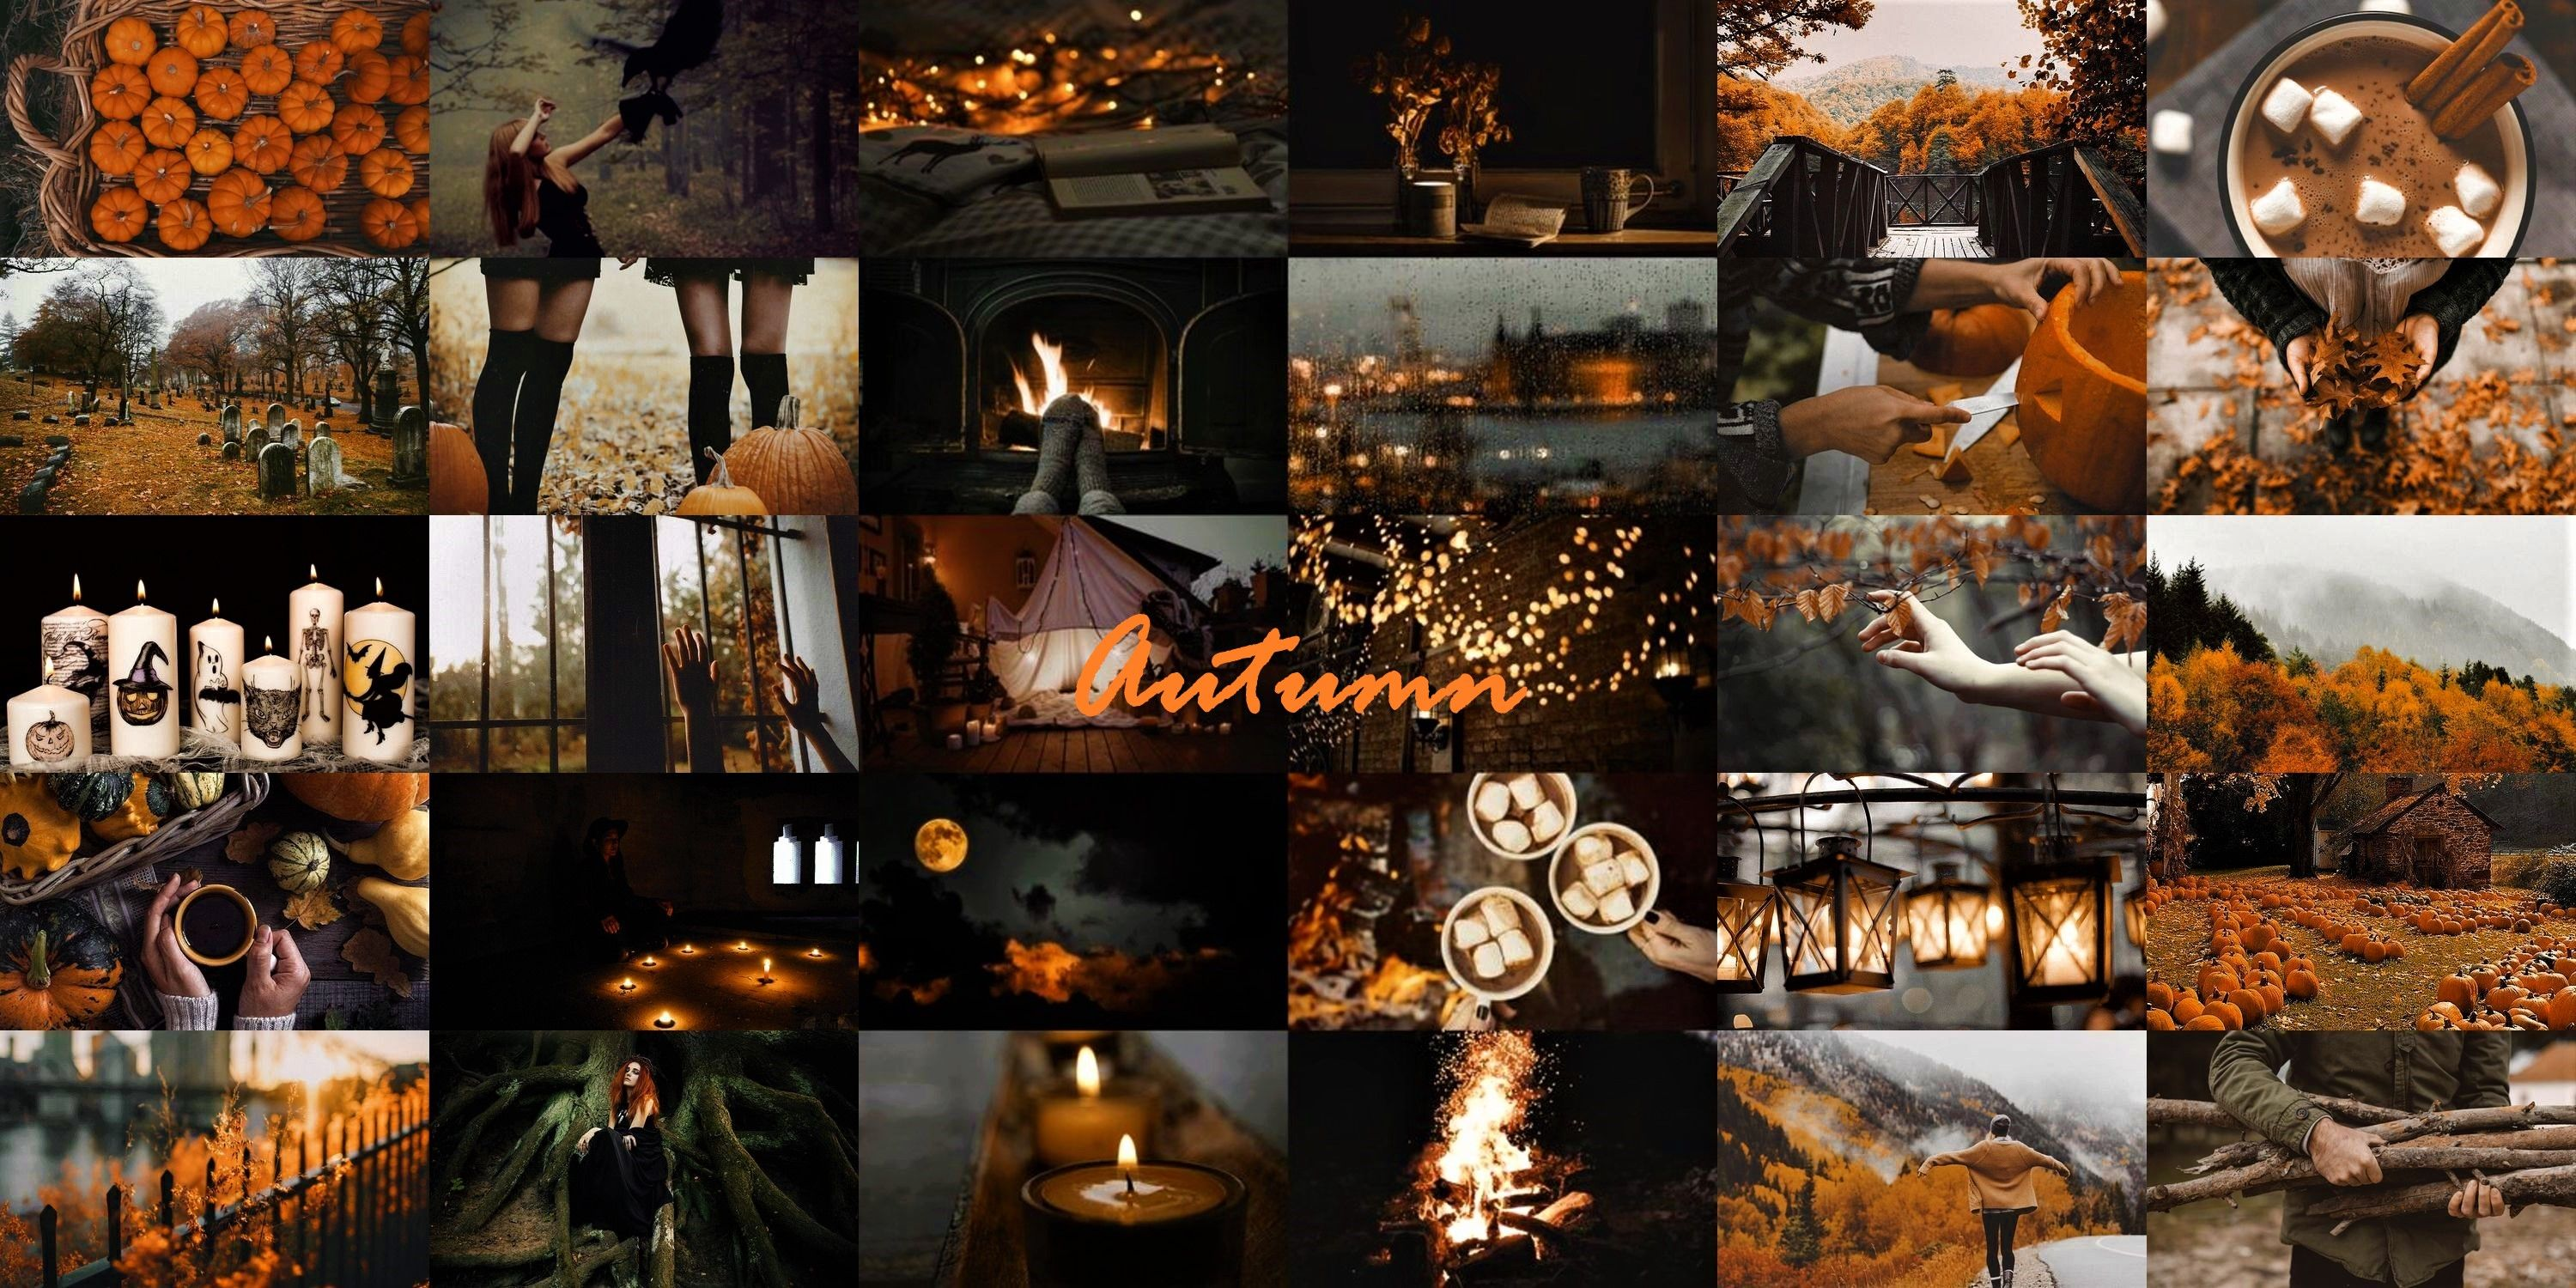 Autumn Fall Halloween Aesthetic Collage Aesthetic Collage Desktop Wallpaper Laptop Wallpaper Desktop Wallpapers